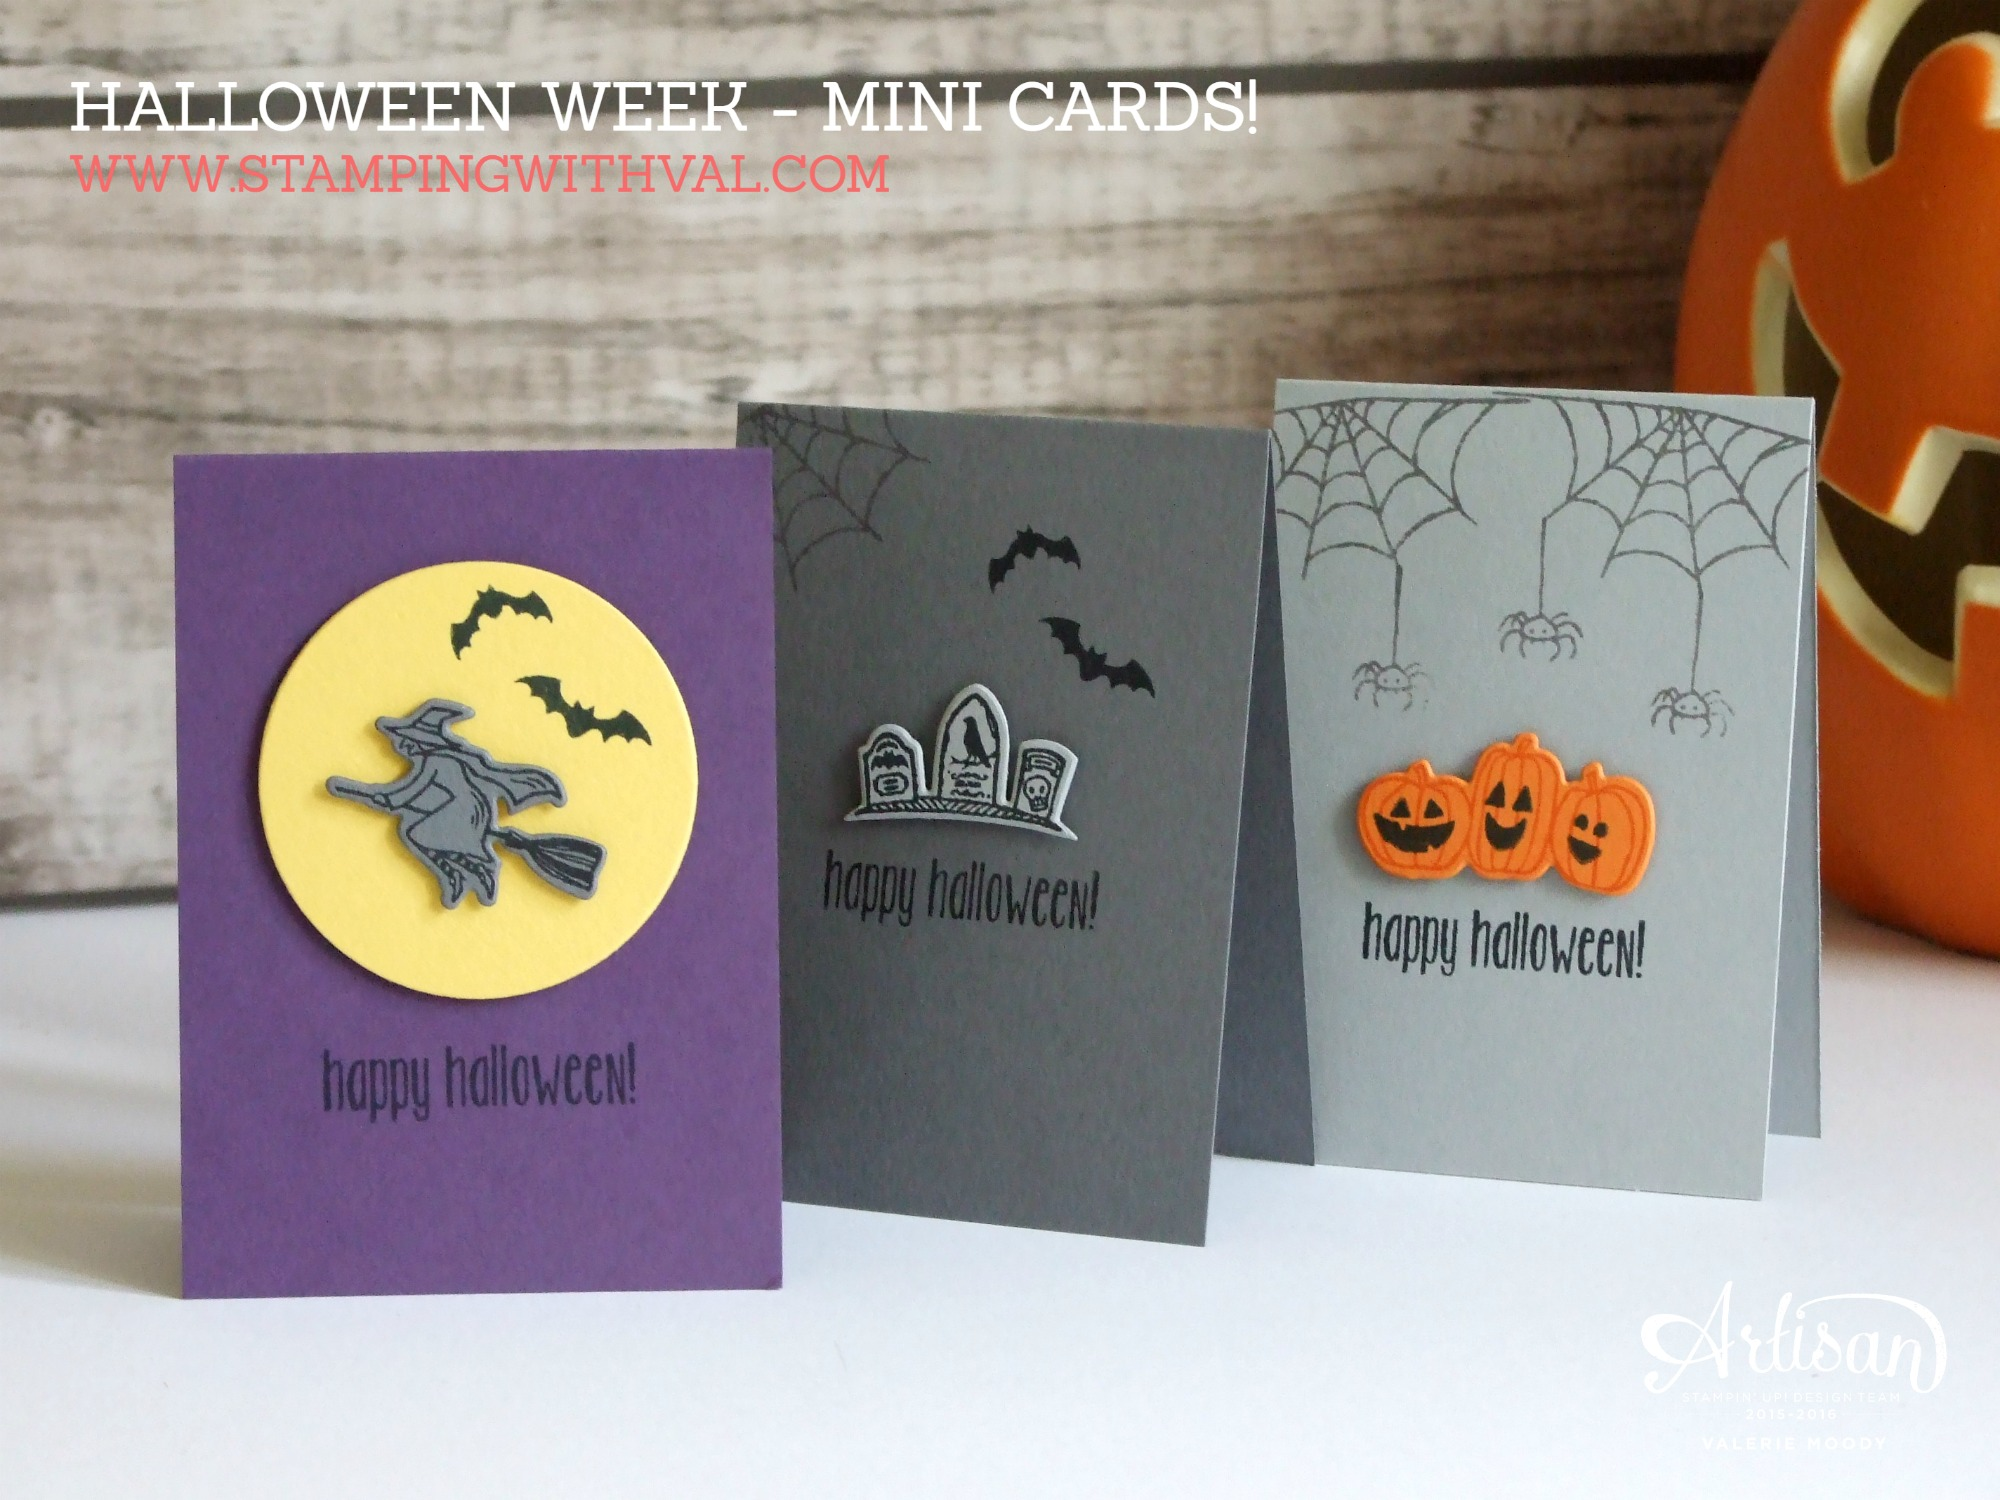 stampin-up-halloween-week-mini-cards-stamping-with-val-x